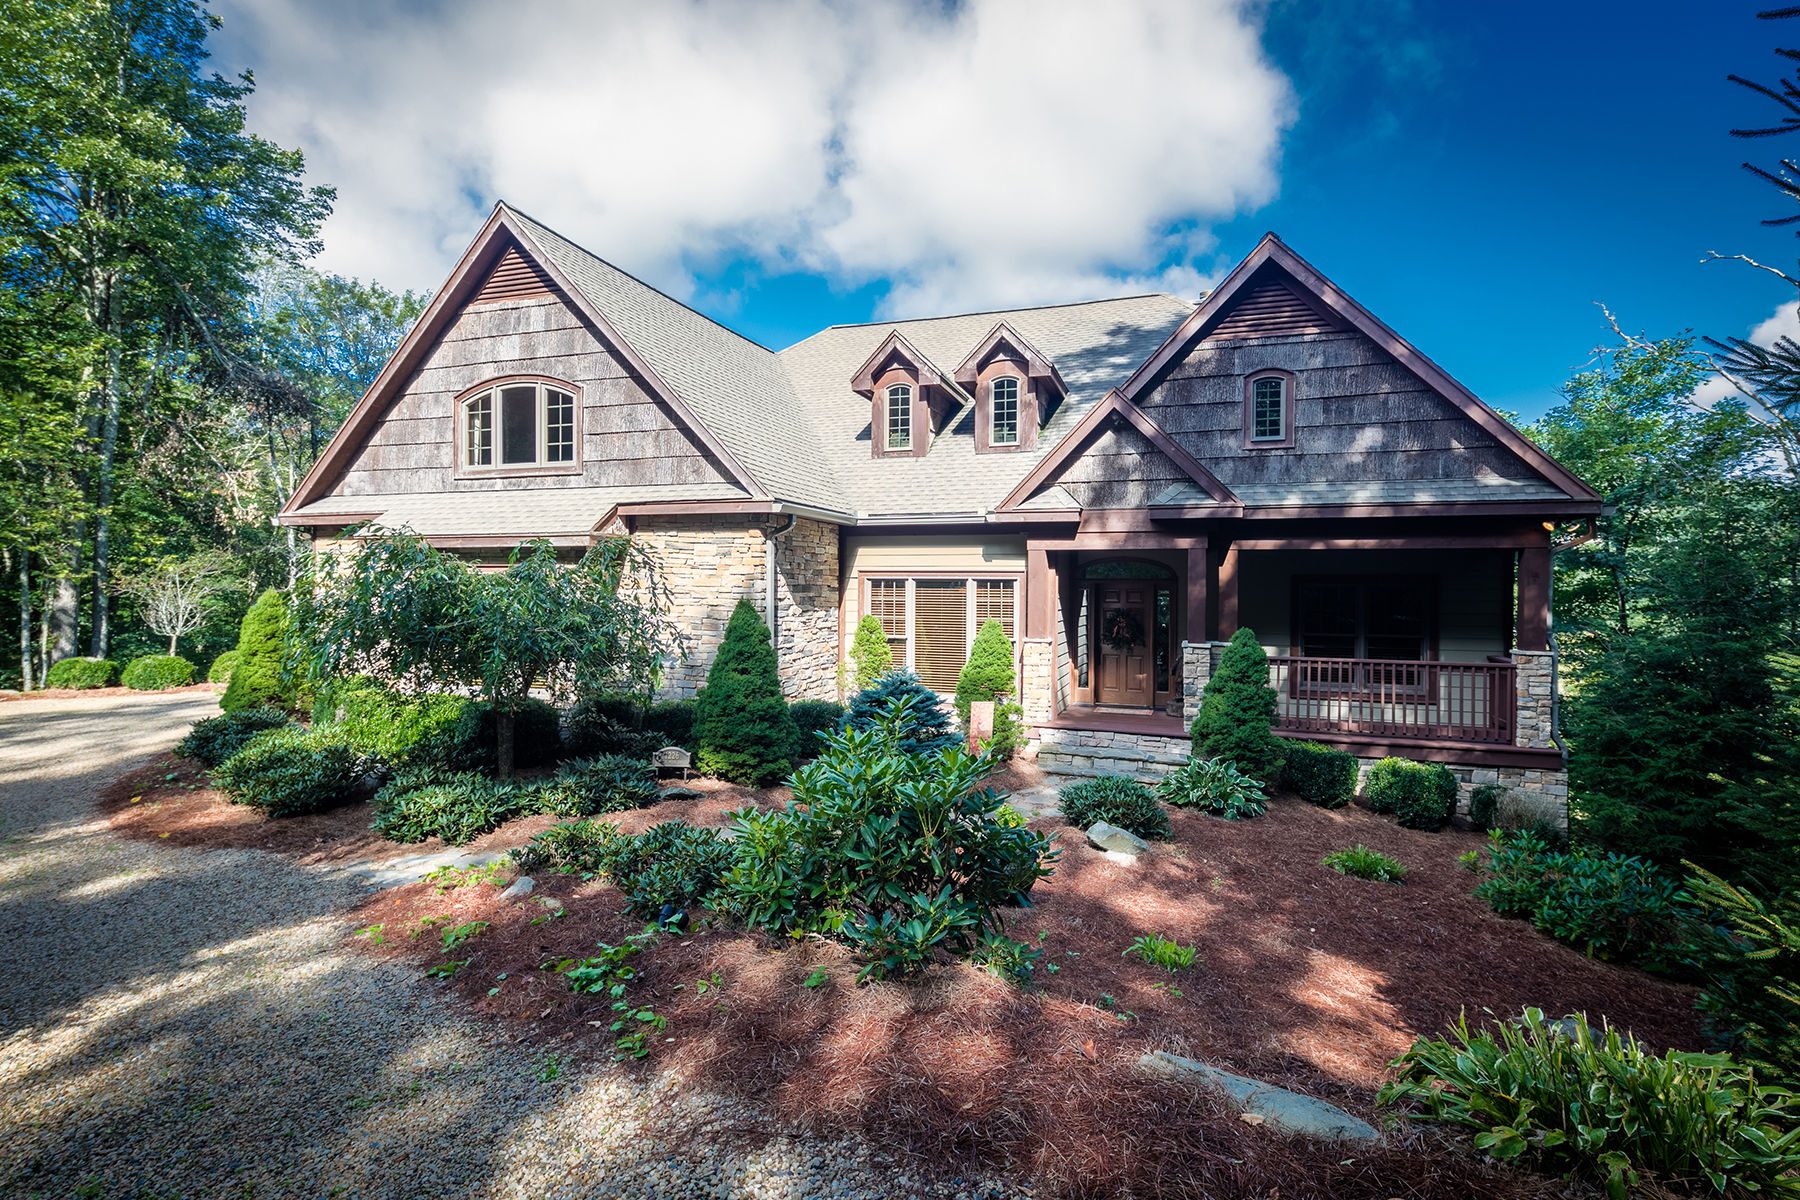 Single Family Home for Sale at SUGAR MOUNTAIN 1226 Grouse Moor Sugar Mountain, North Carolina, 28604 United States